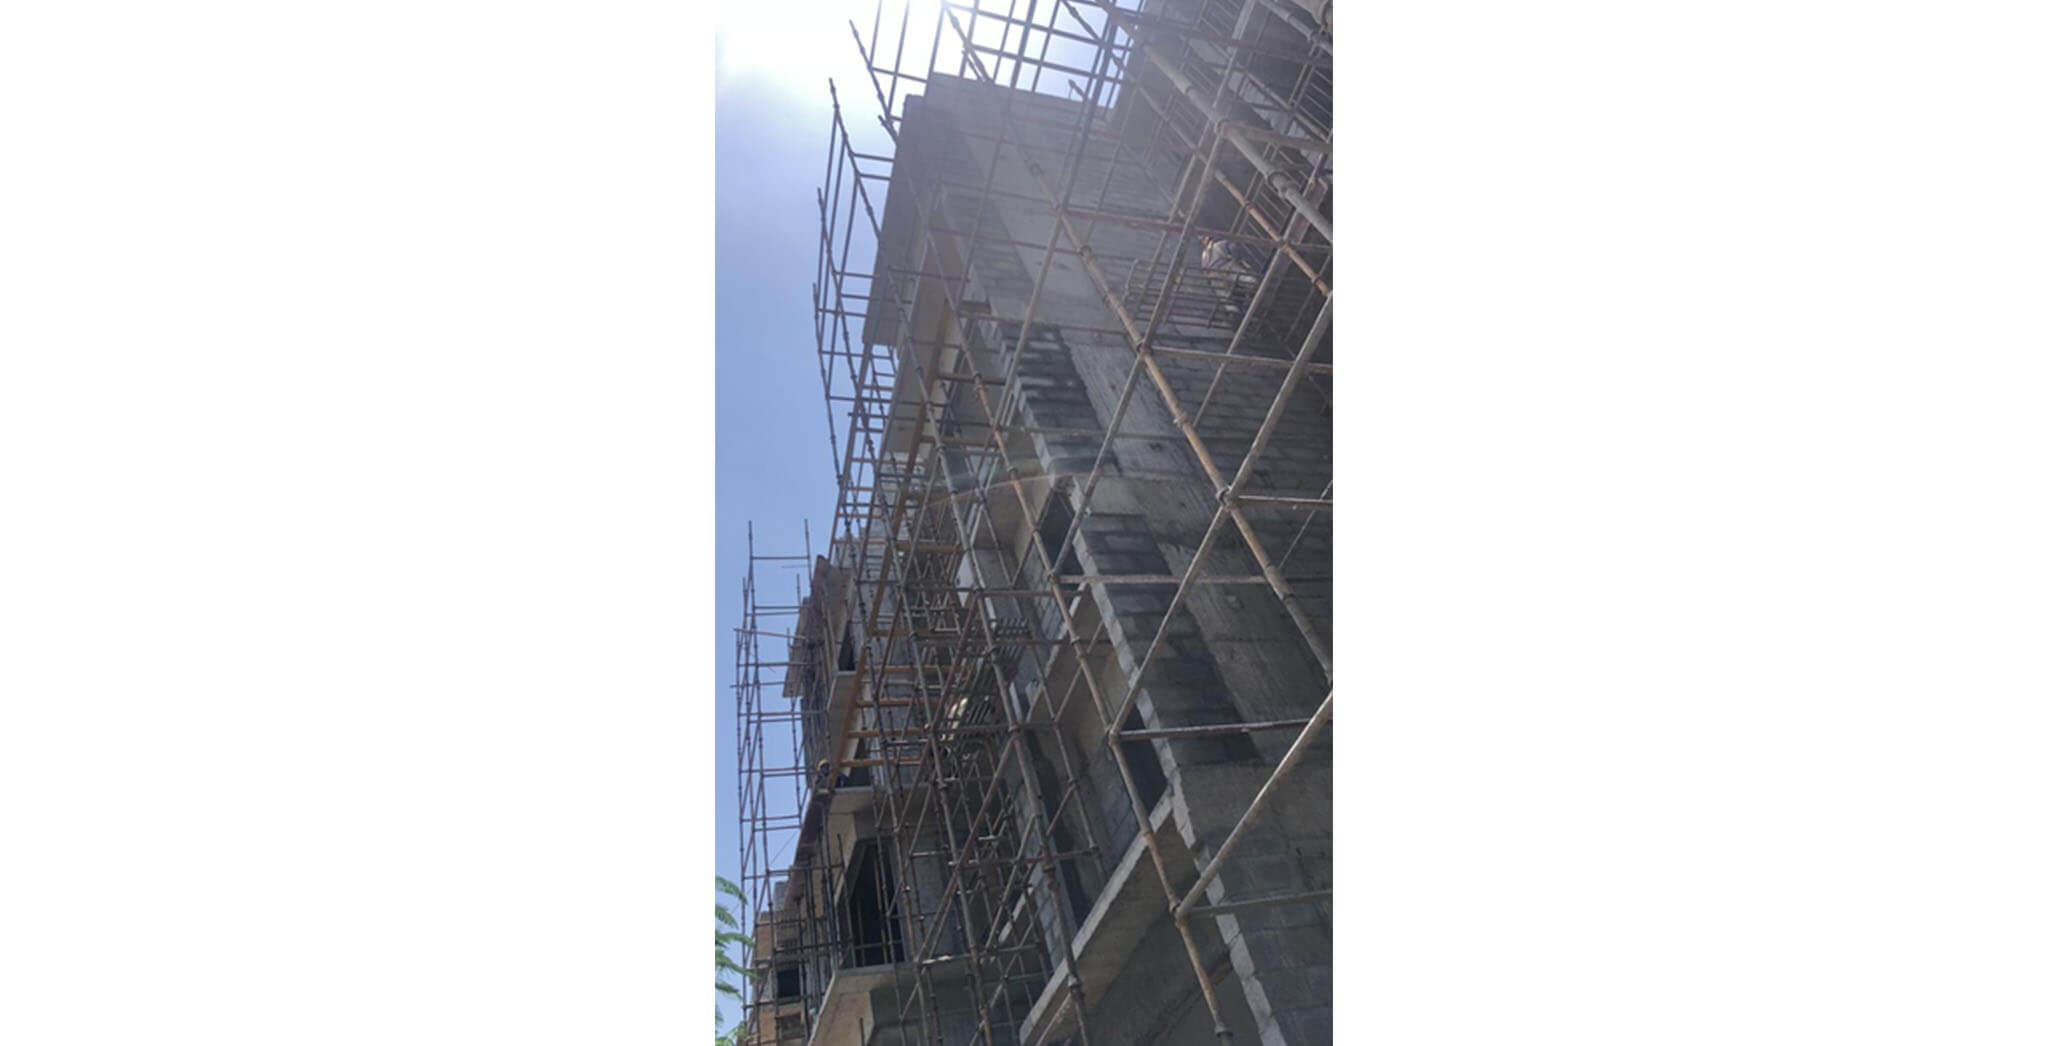 May 2021 - N Block: North elevation external texture, Up to 3rd floor Lobby plastering, Up to 4th floor ledge wall plastering, South elevation pergola works completed; Terrace floor waterproofing membrane, 4th floor internal plastering work-in-progress; Lift erection/installation works commenced.